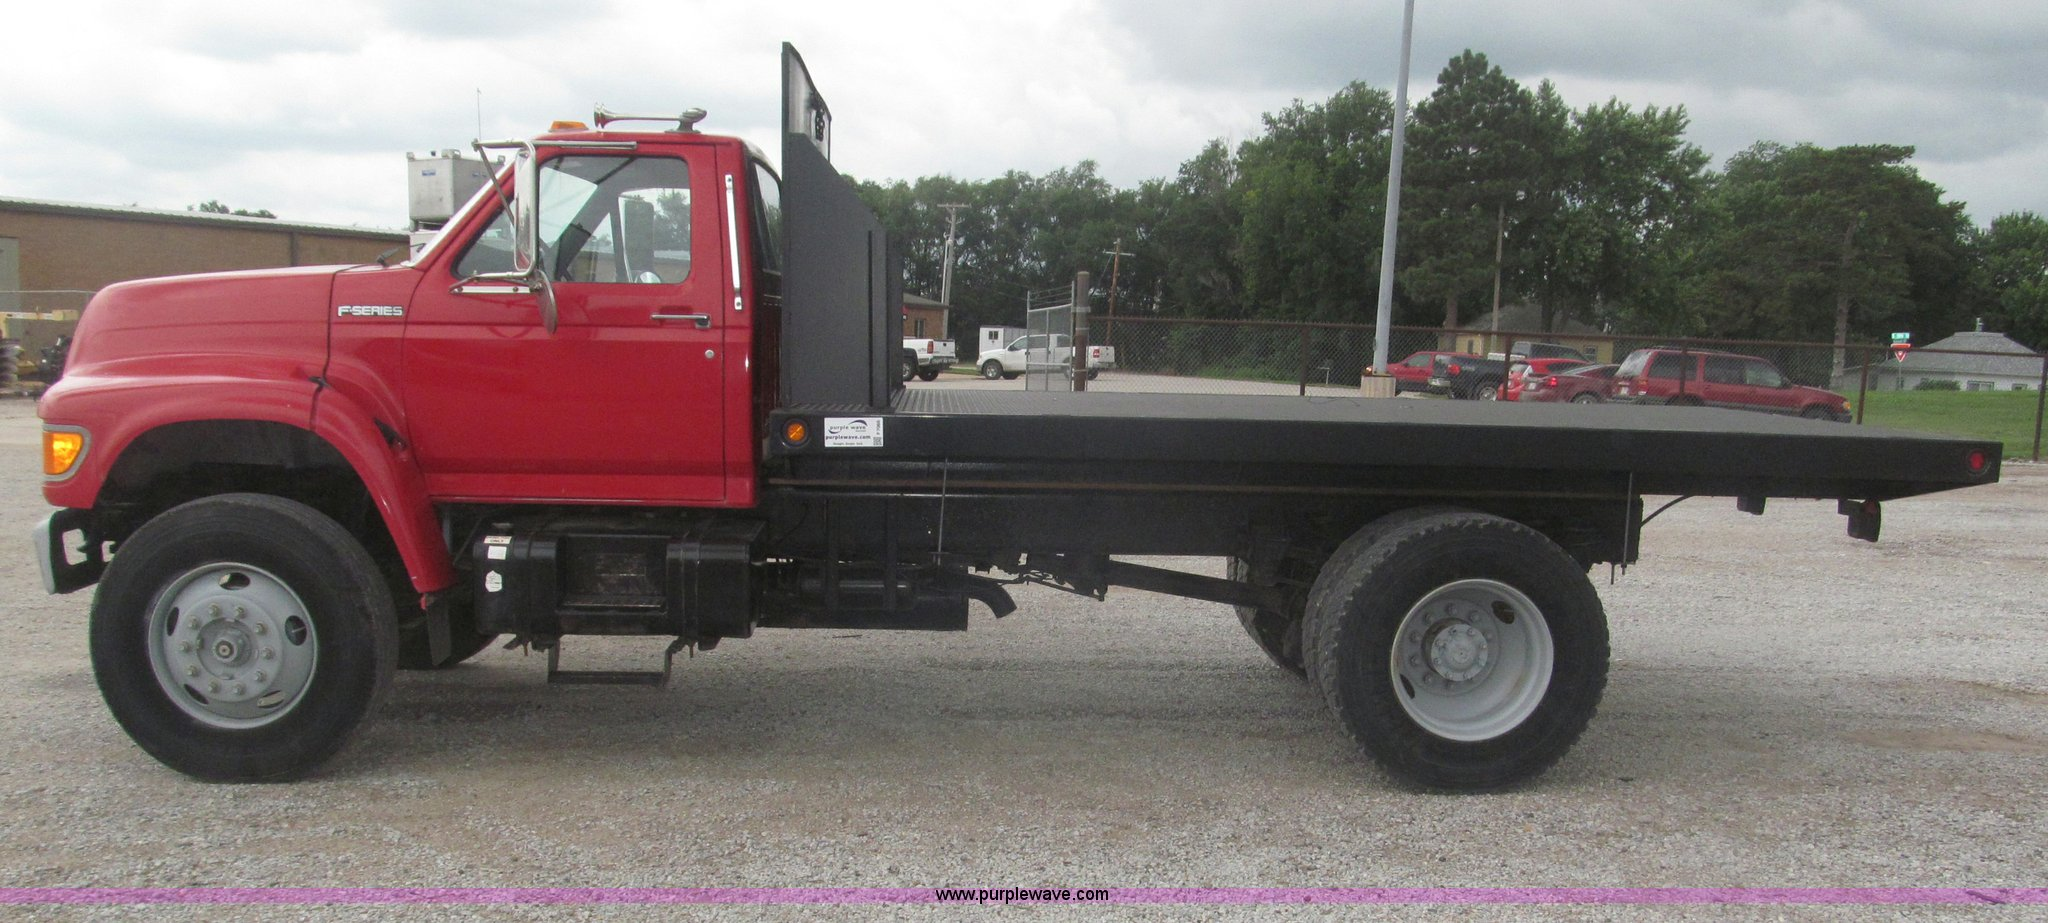 ... 1999 Ford F800 flatbed truck Full size in new window ...